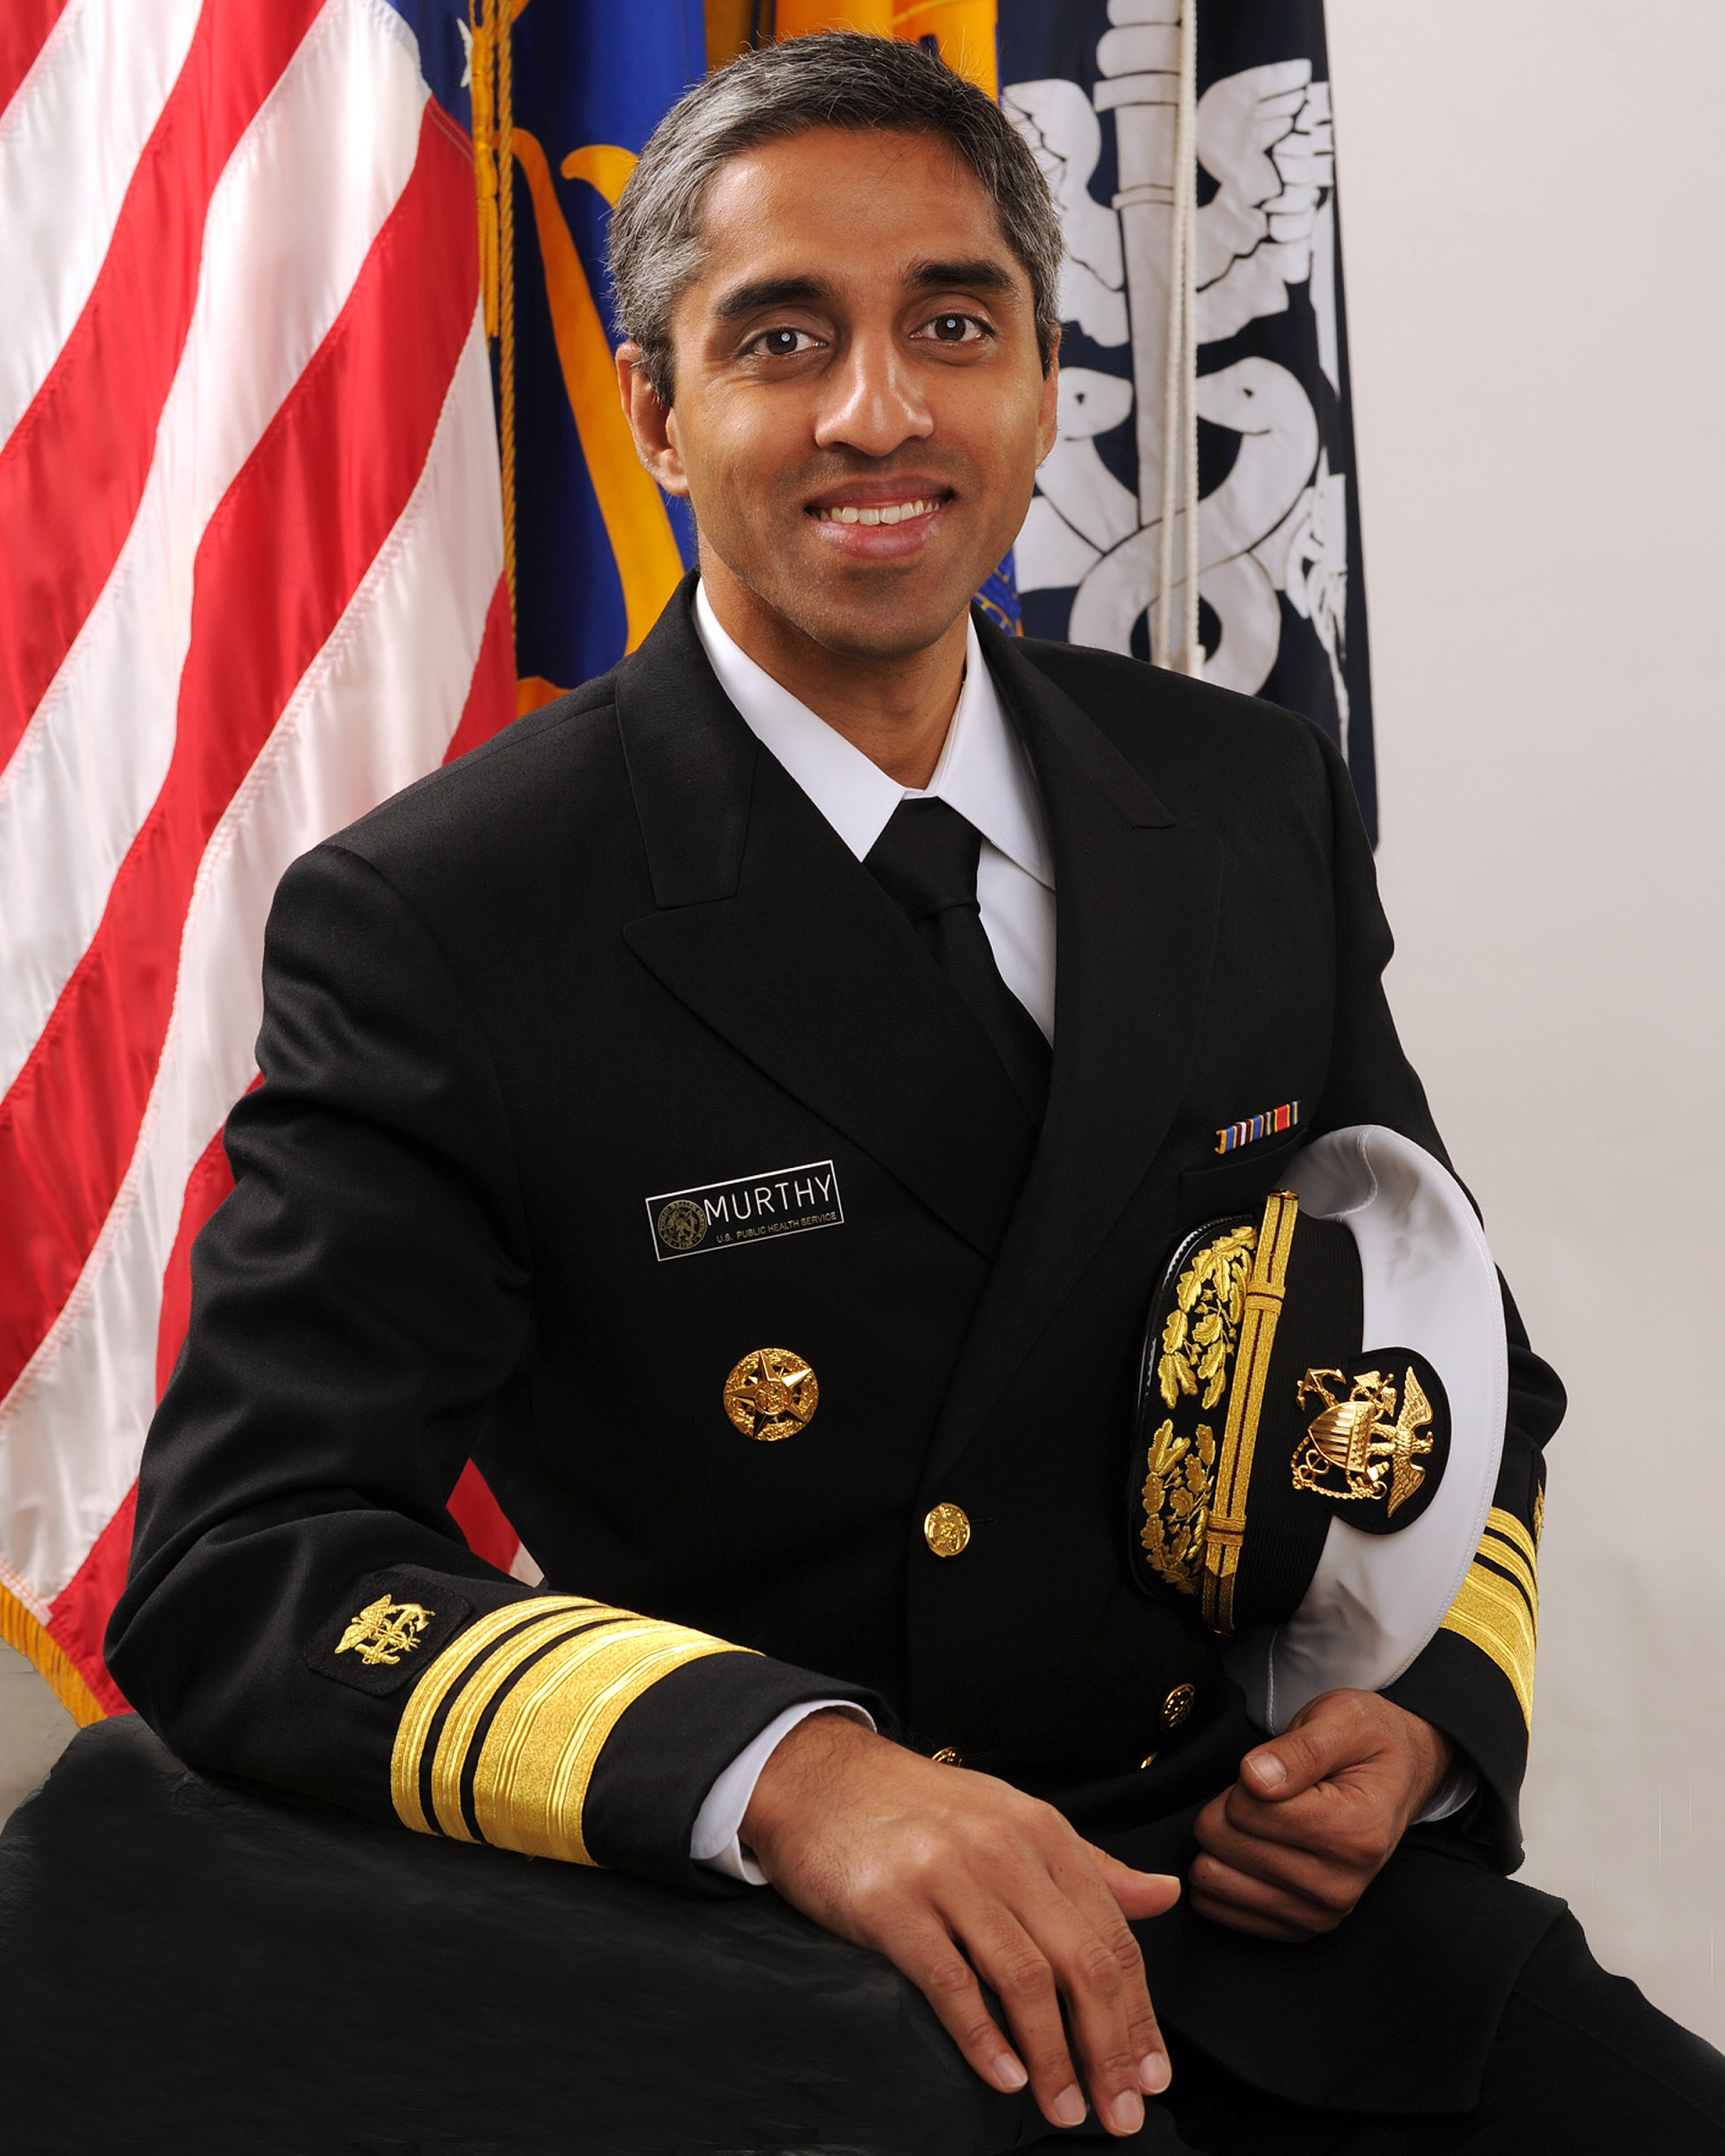 Vice Admiral Murthy